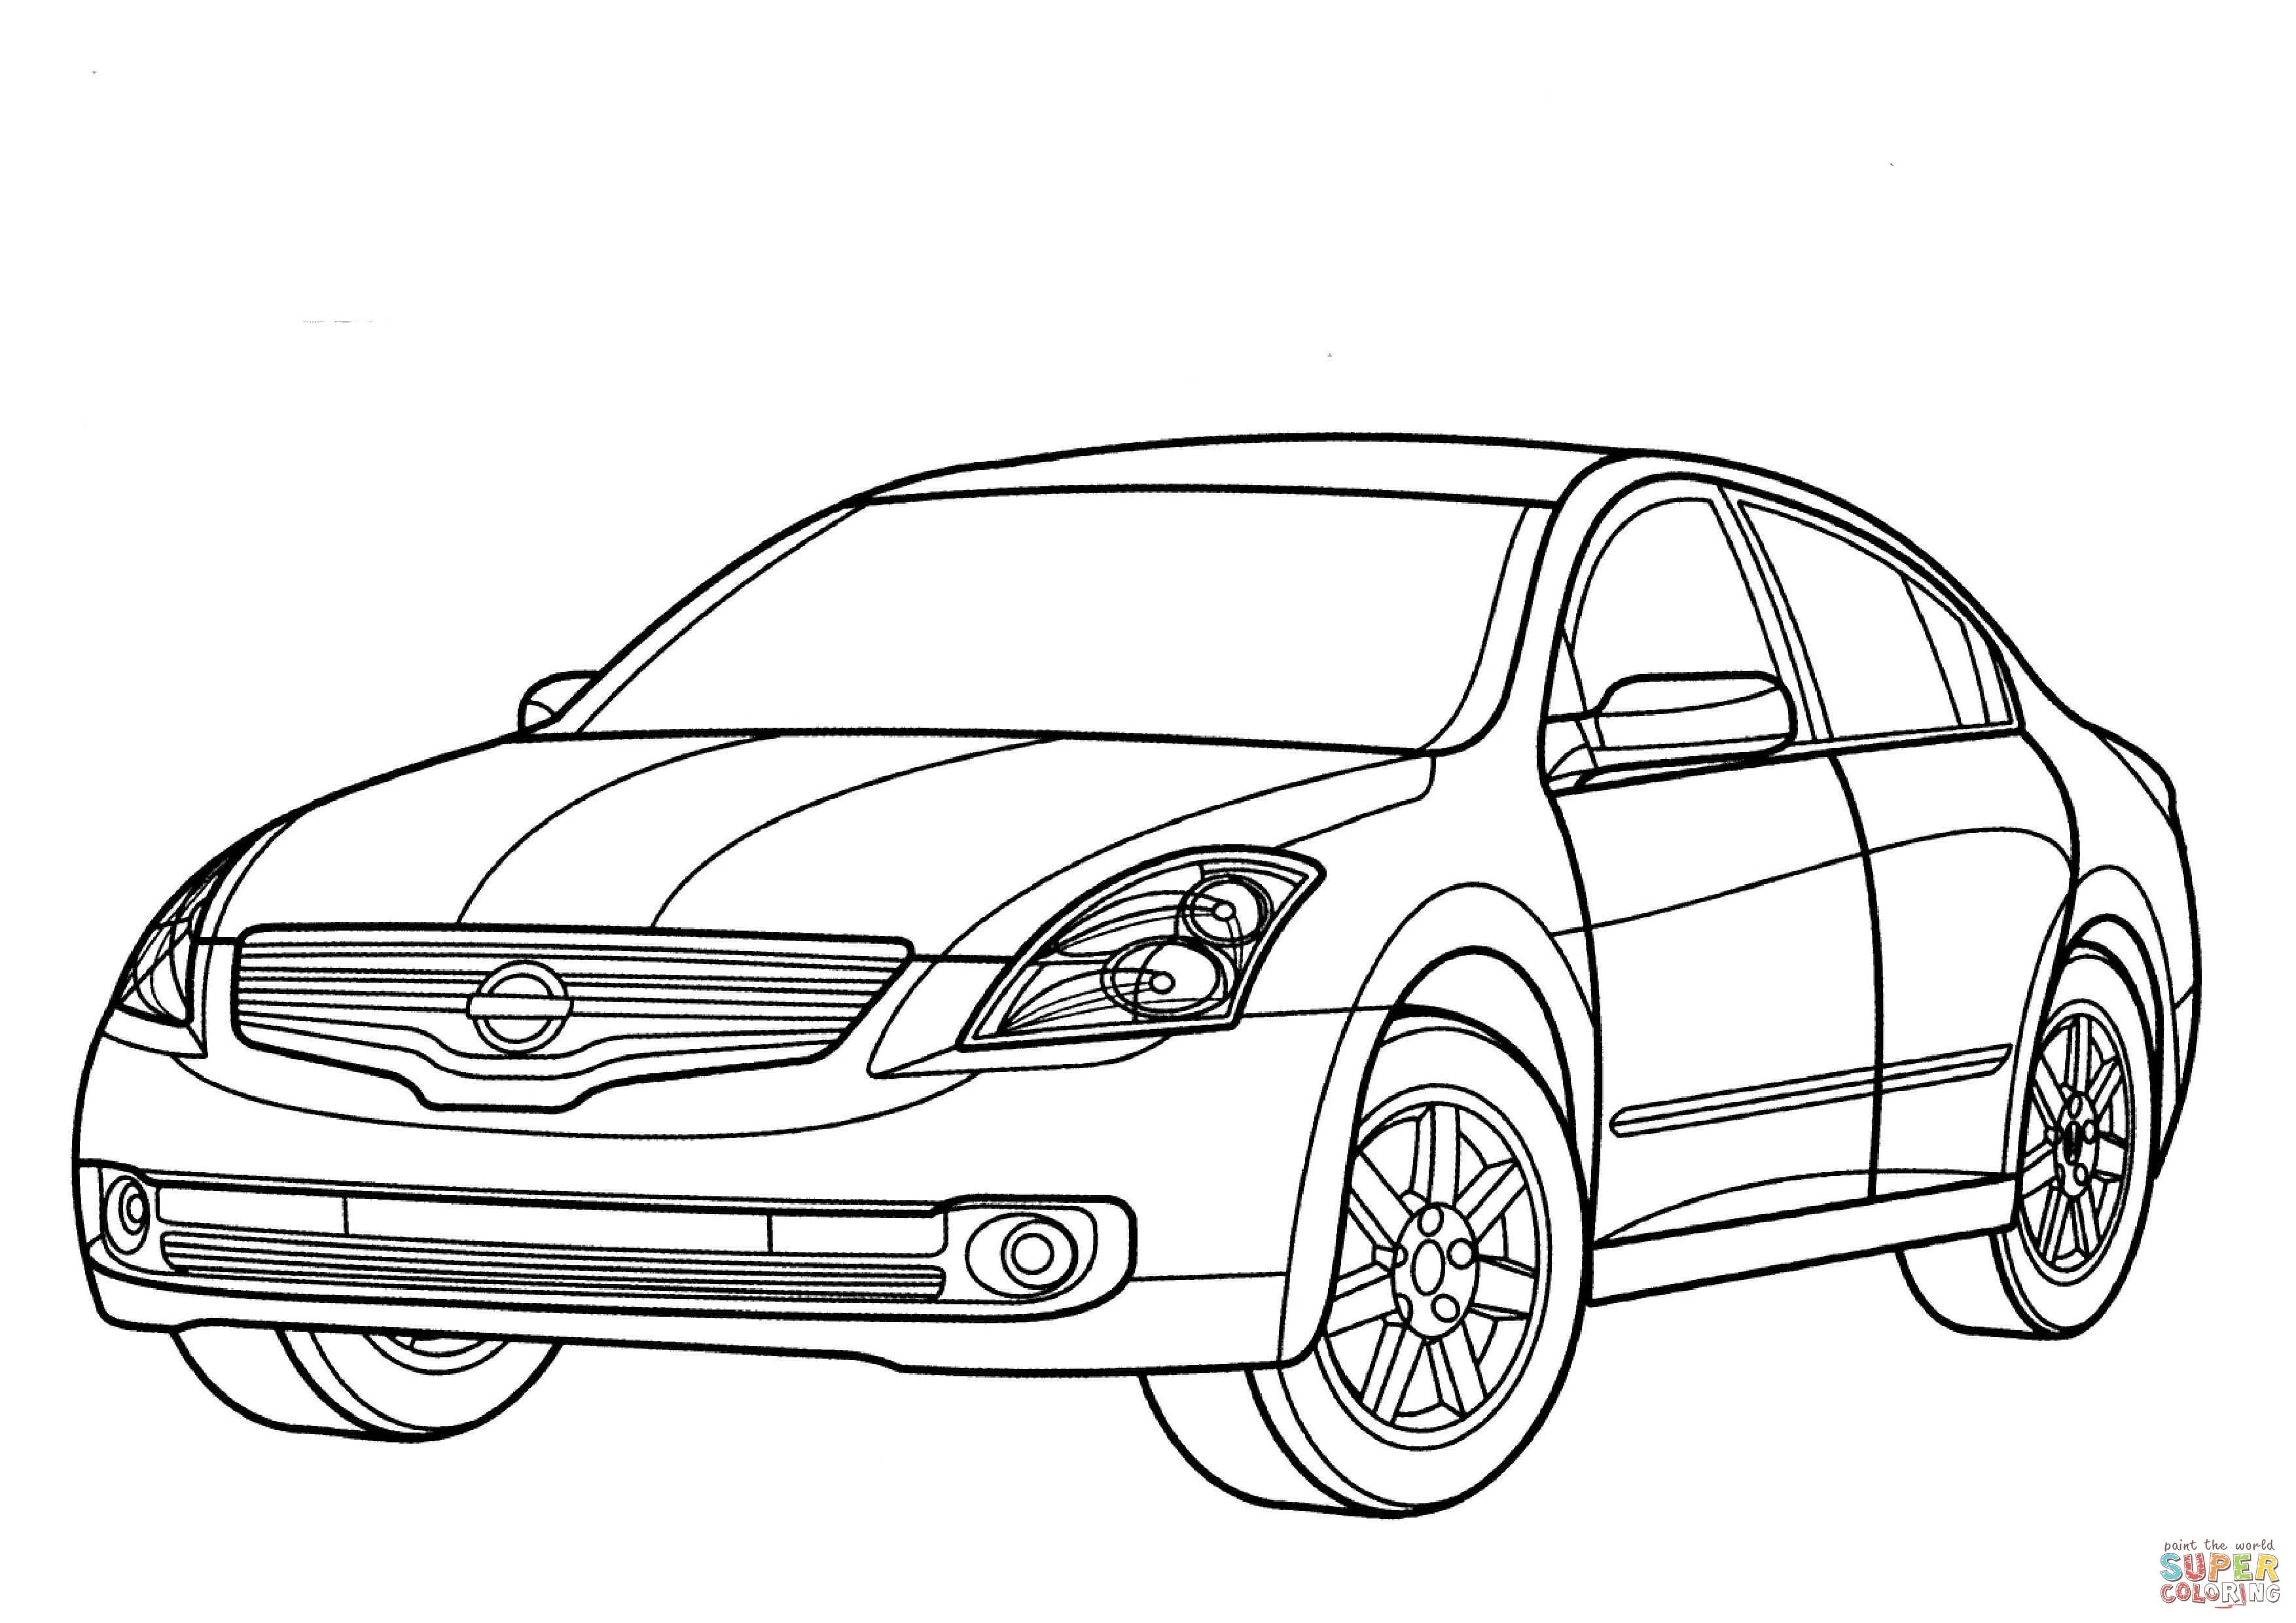 Gtr Coloring Pages At Getdrawings Com Free For Personal Use Gtr